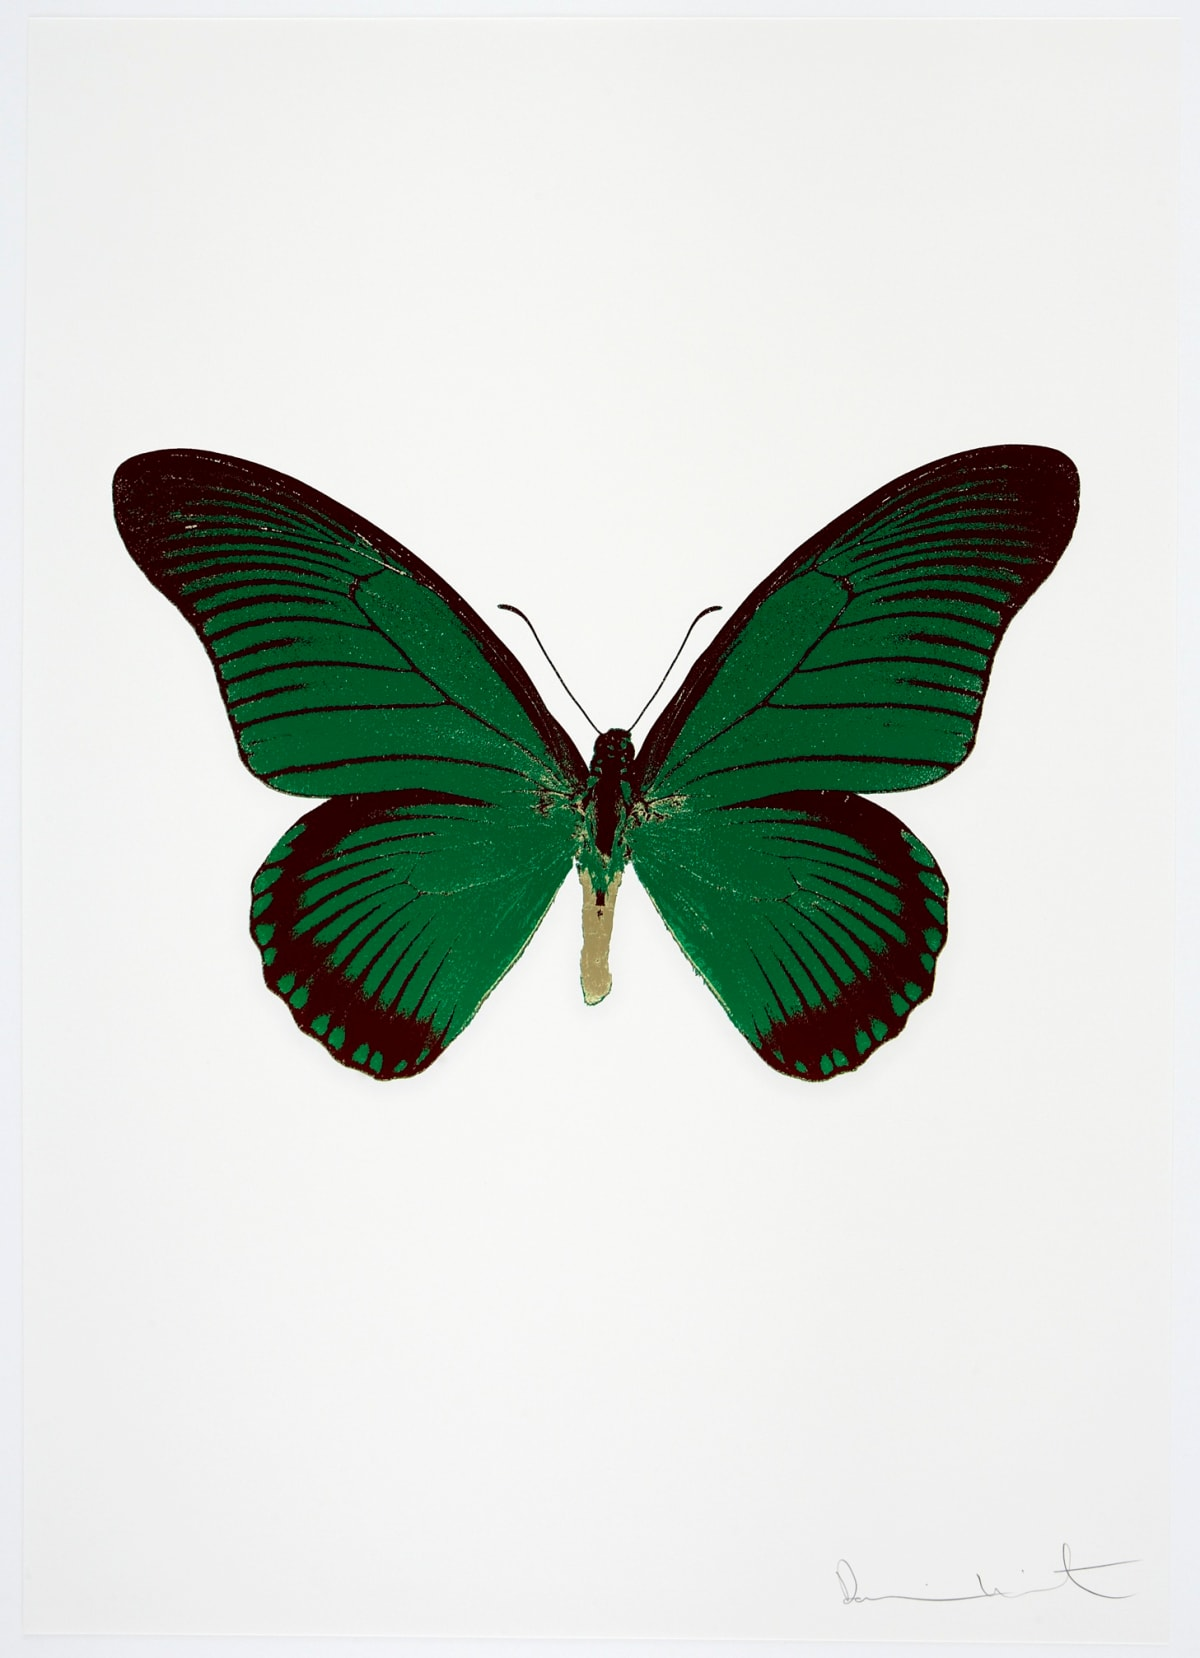 Damien Hirst The Souls IV - Emerald Green/Burgundy/Cool Gold Damien Hirst butterfly foil print for sale Damien Hirst print for sale , 2010 3 colour foil block on 300gsm Arches 88 archival paper. Signed and numbered. Published by Paul Stolper and Other Criteria 72 x 51cm OC8021 / 1418-44 Edition of 15